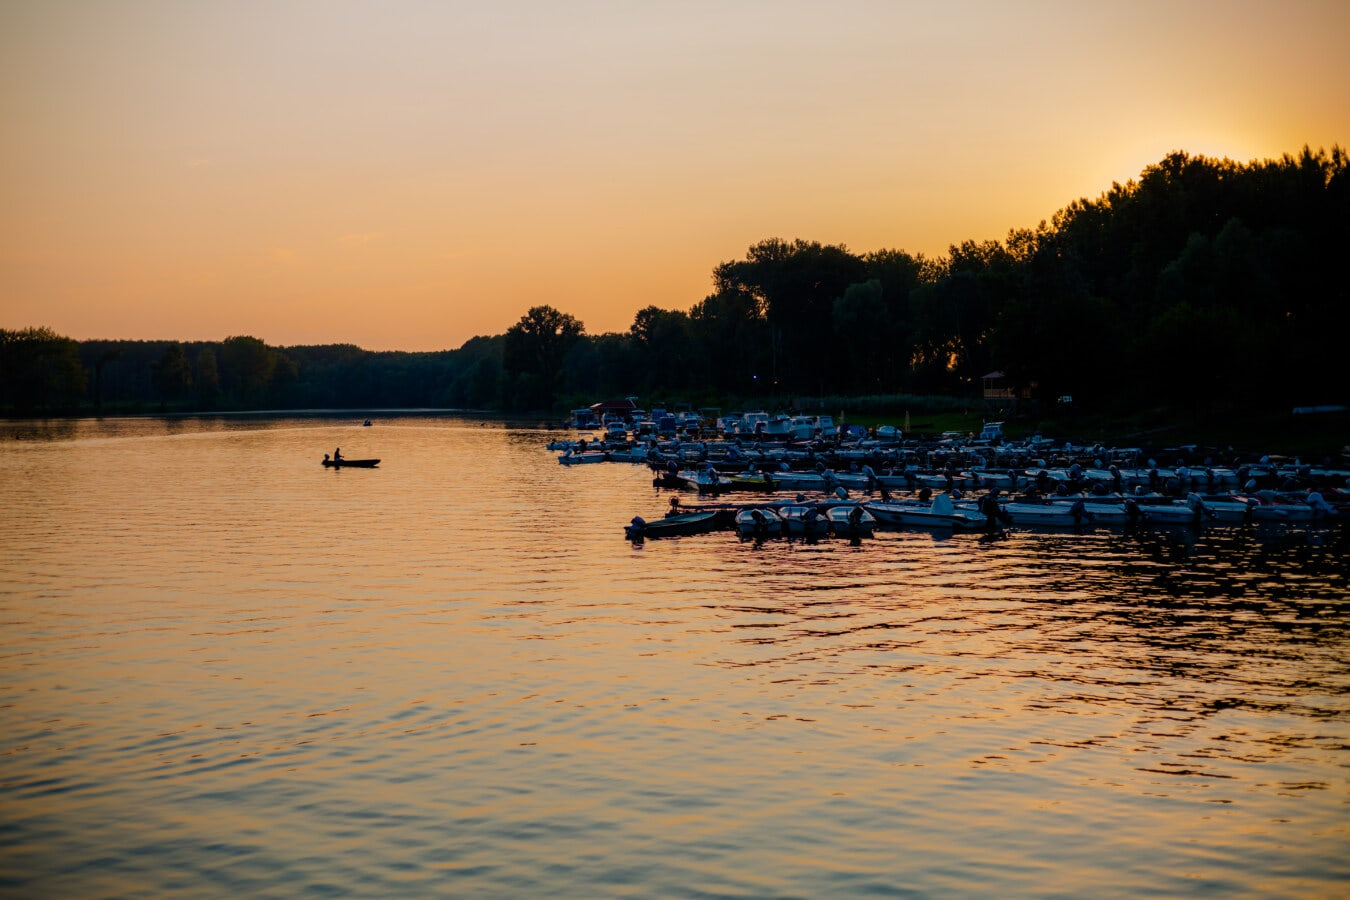 dusk, lake, placid, boats, harbour, silhouette, water, sunset, reflection, river